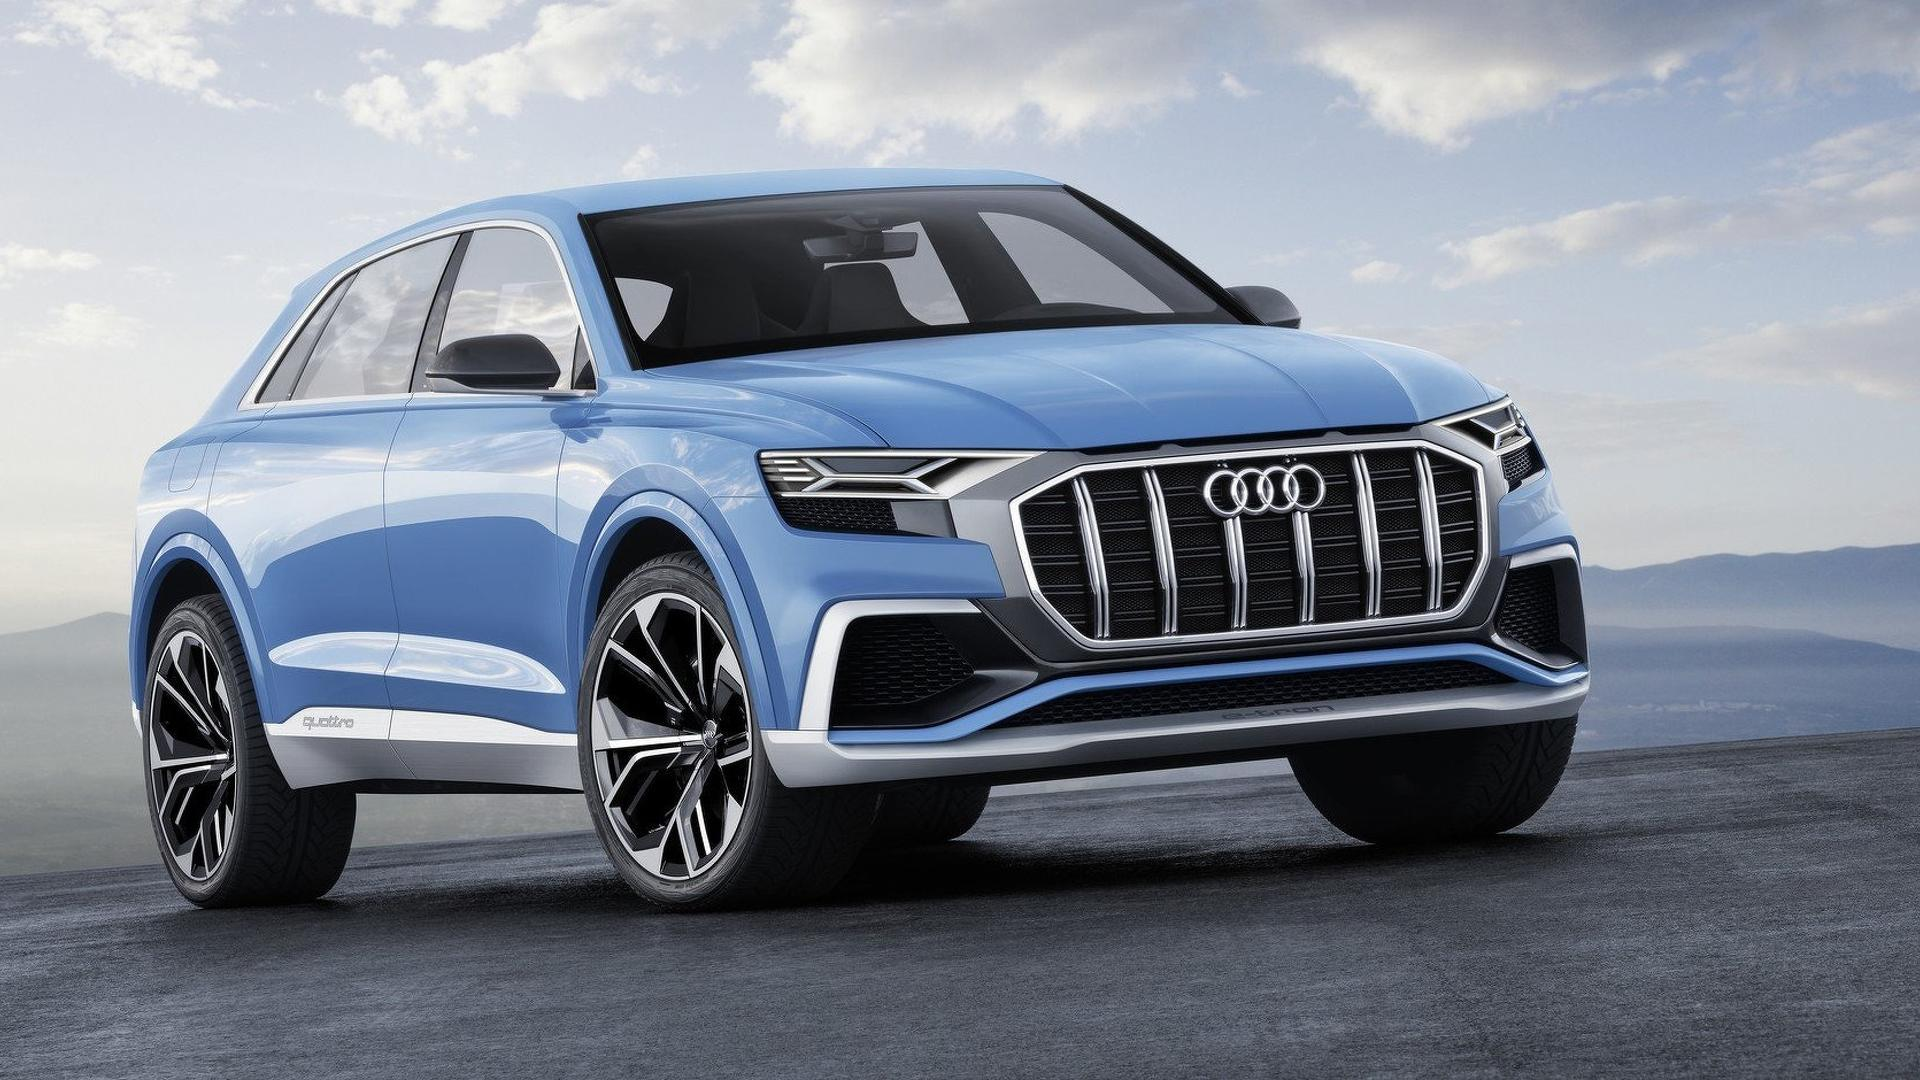 Audi Suv Models >> 2019 Audi Q8 Everything We Know